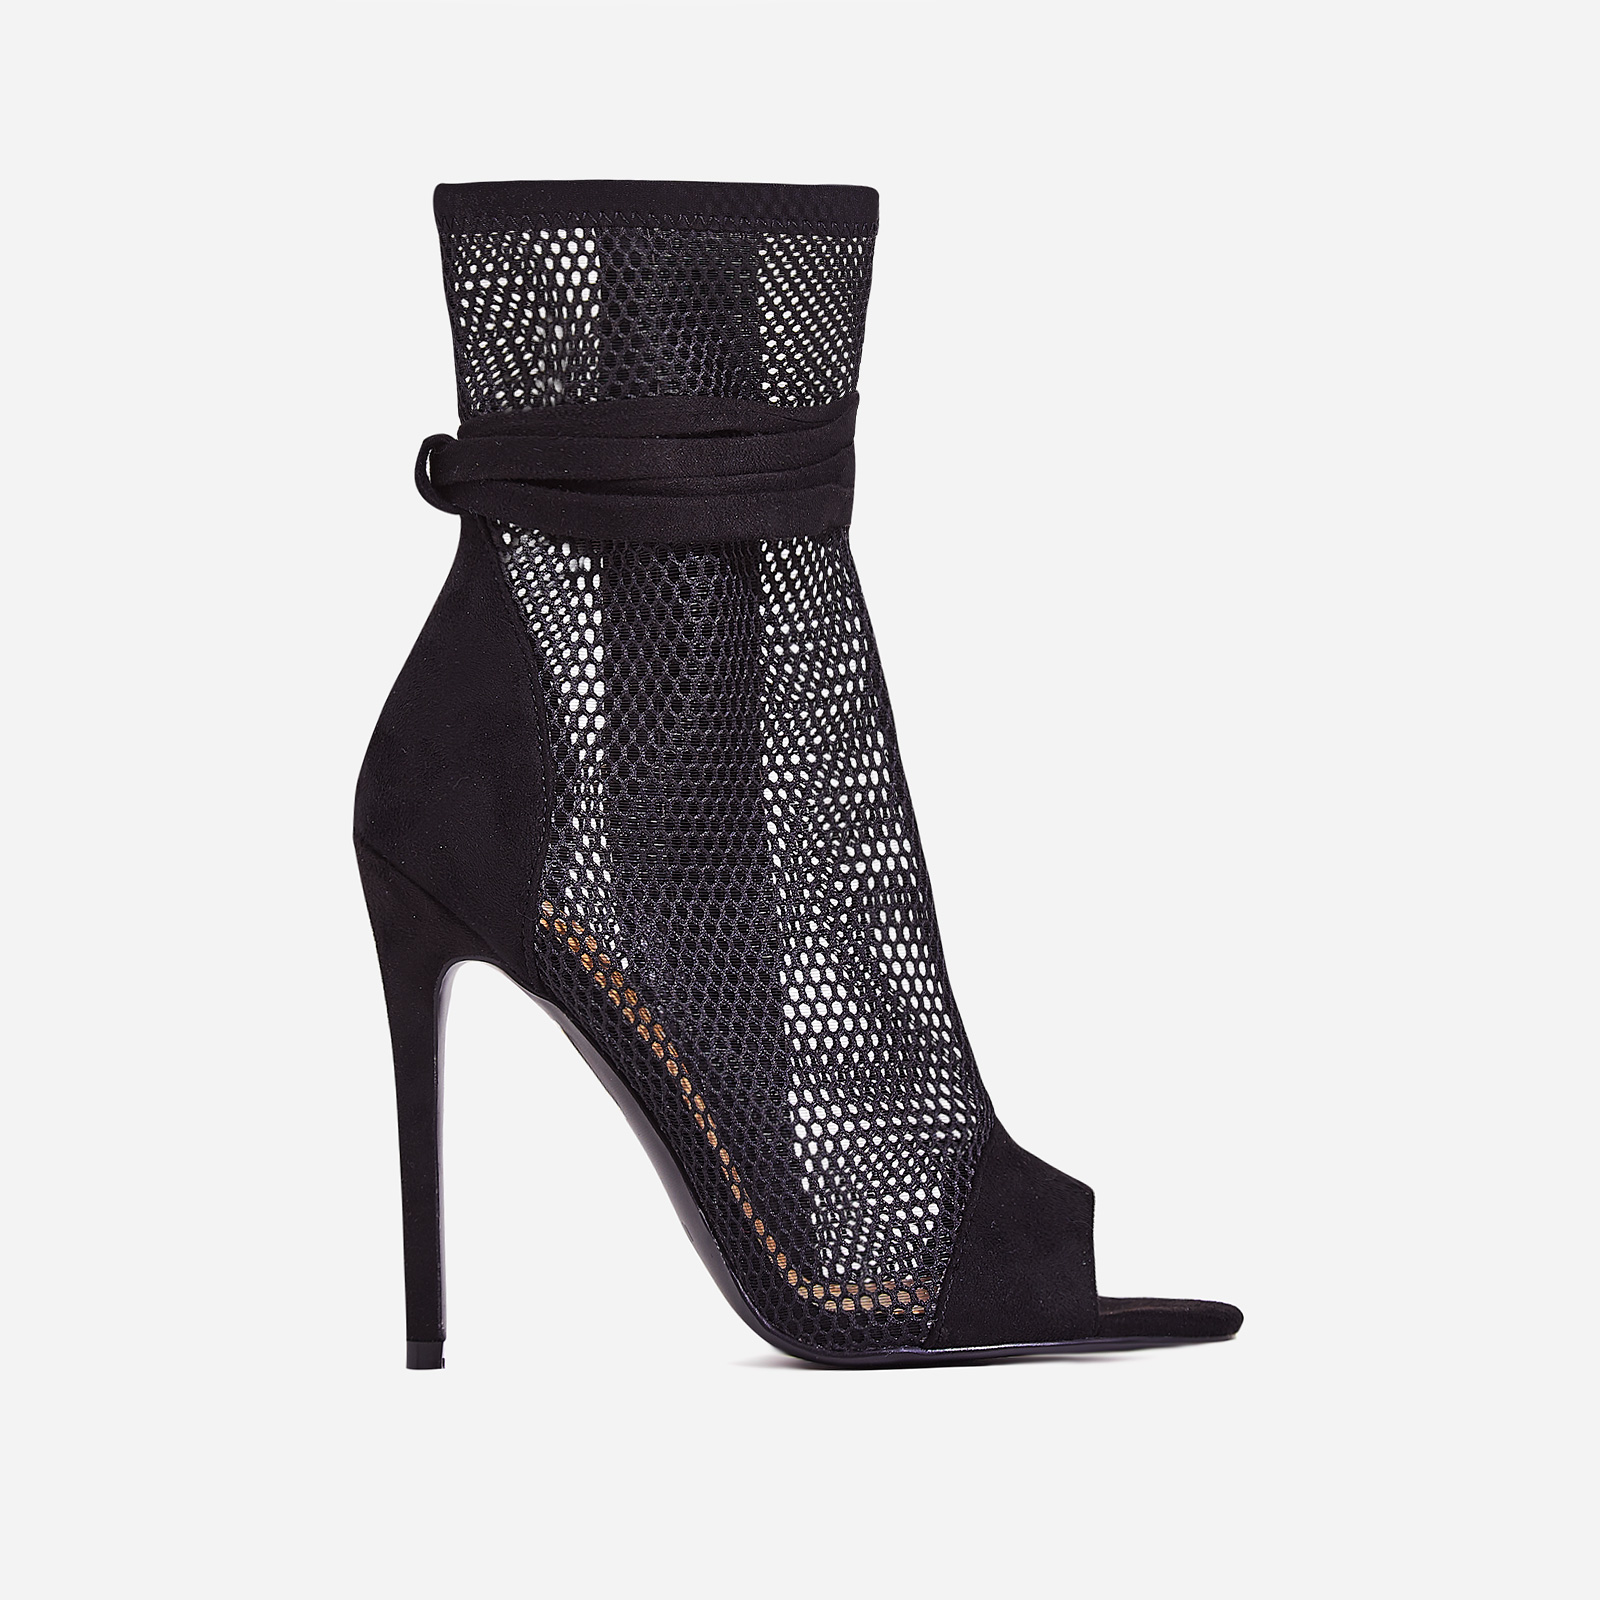 Jax Lace Up Mesh Peep Toe Heel In Black Faux Suede